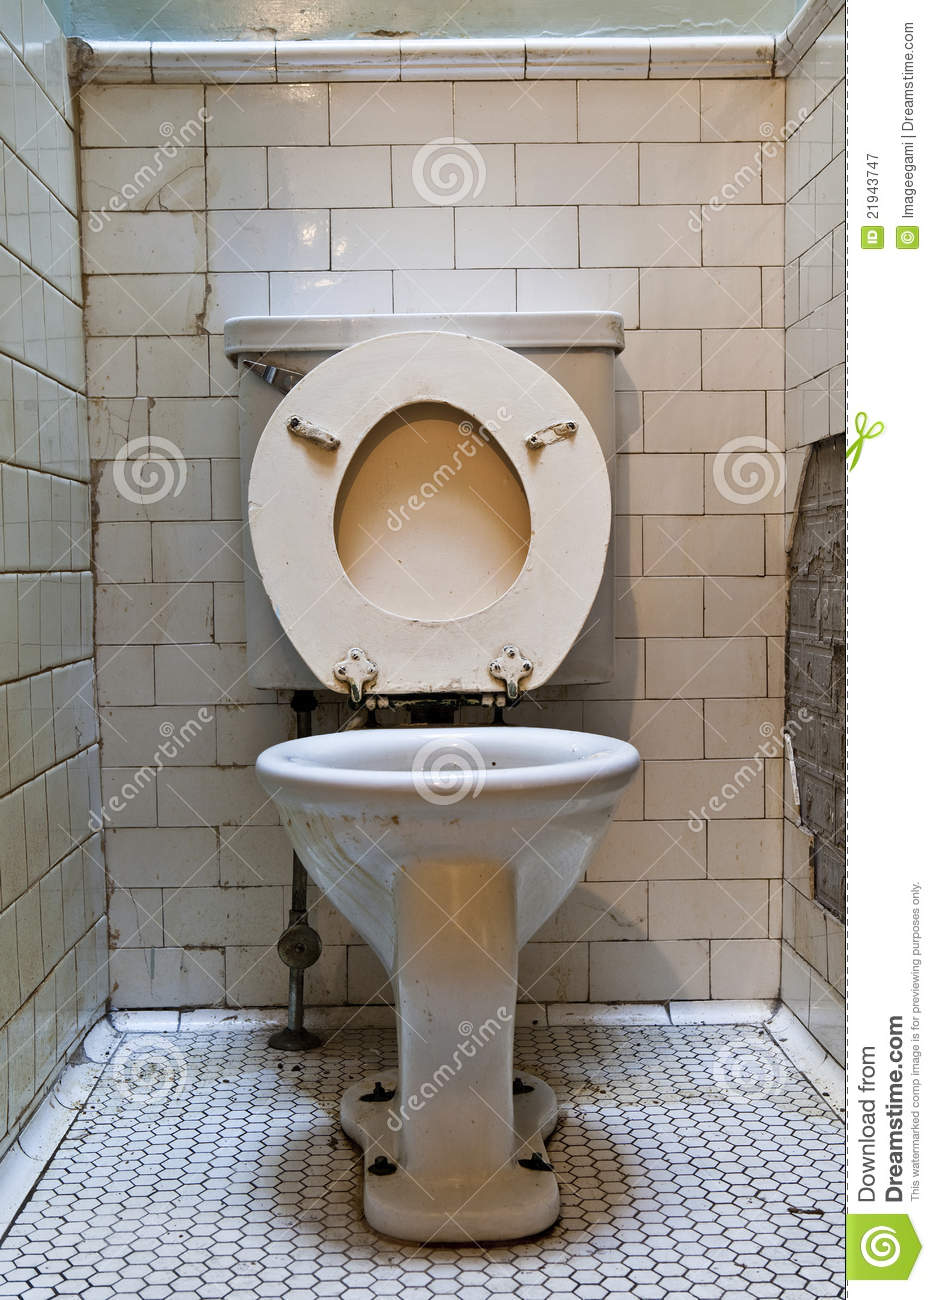 Dirty Old Toilet Stock Image Image Of Grunge Water